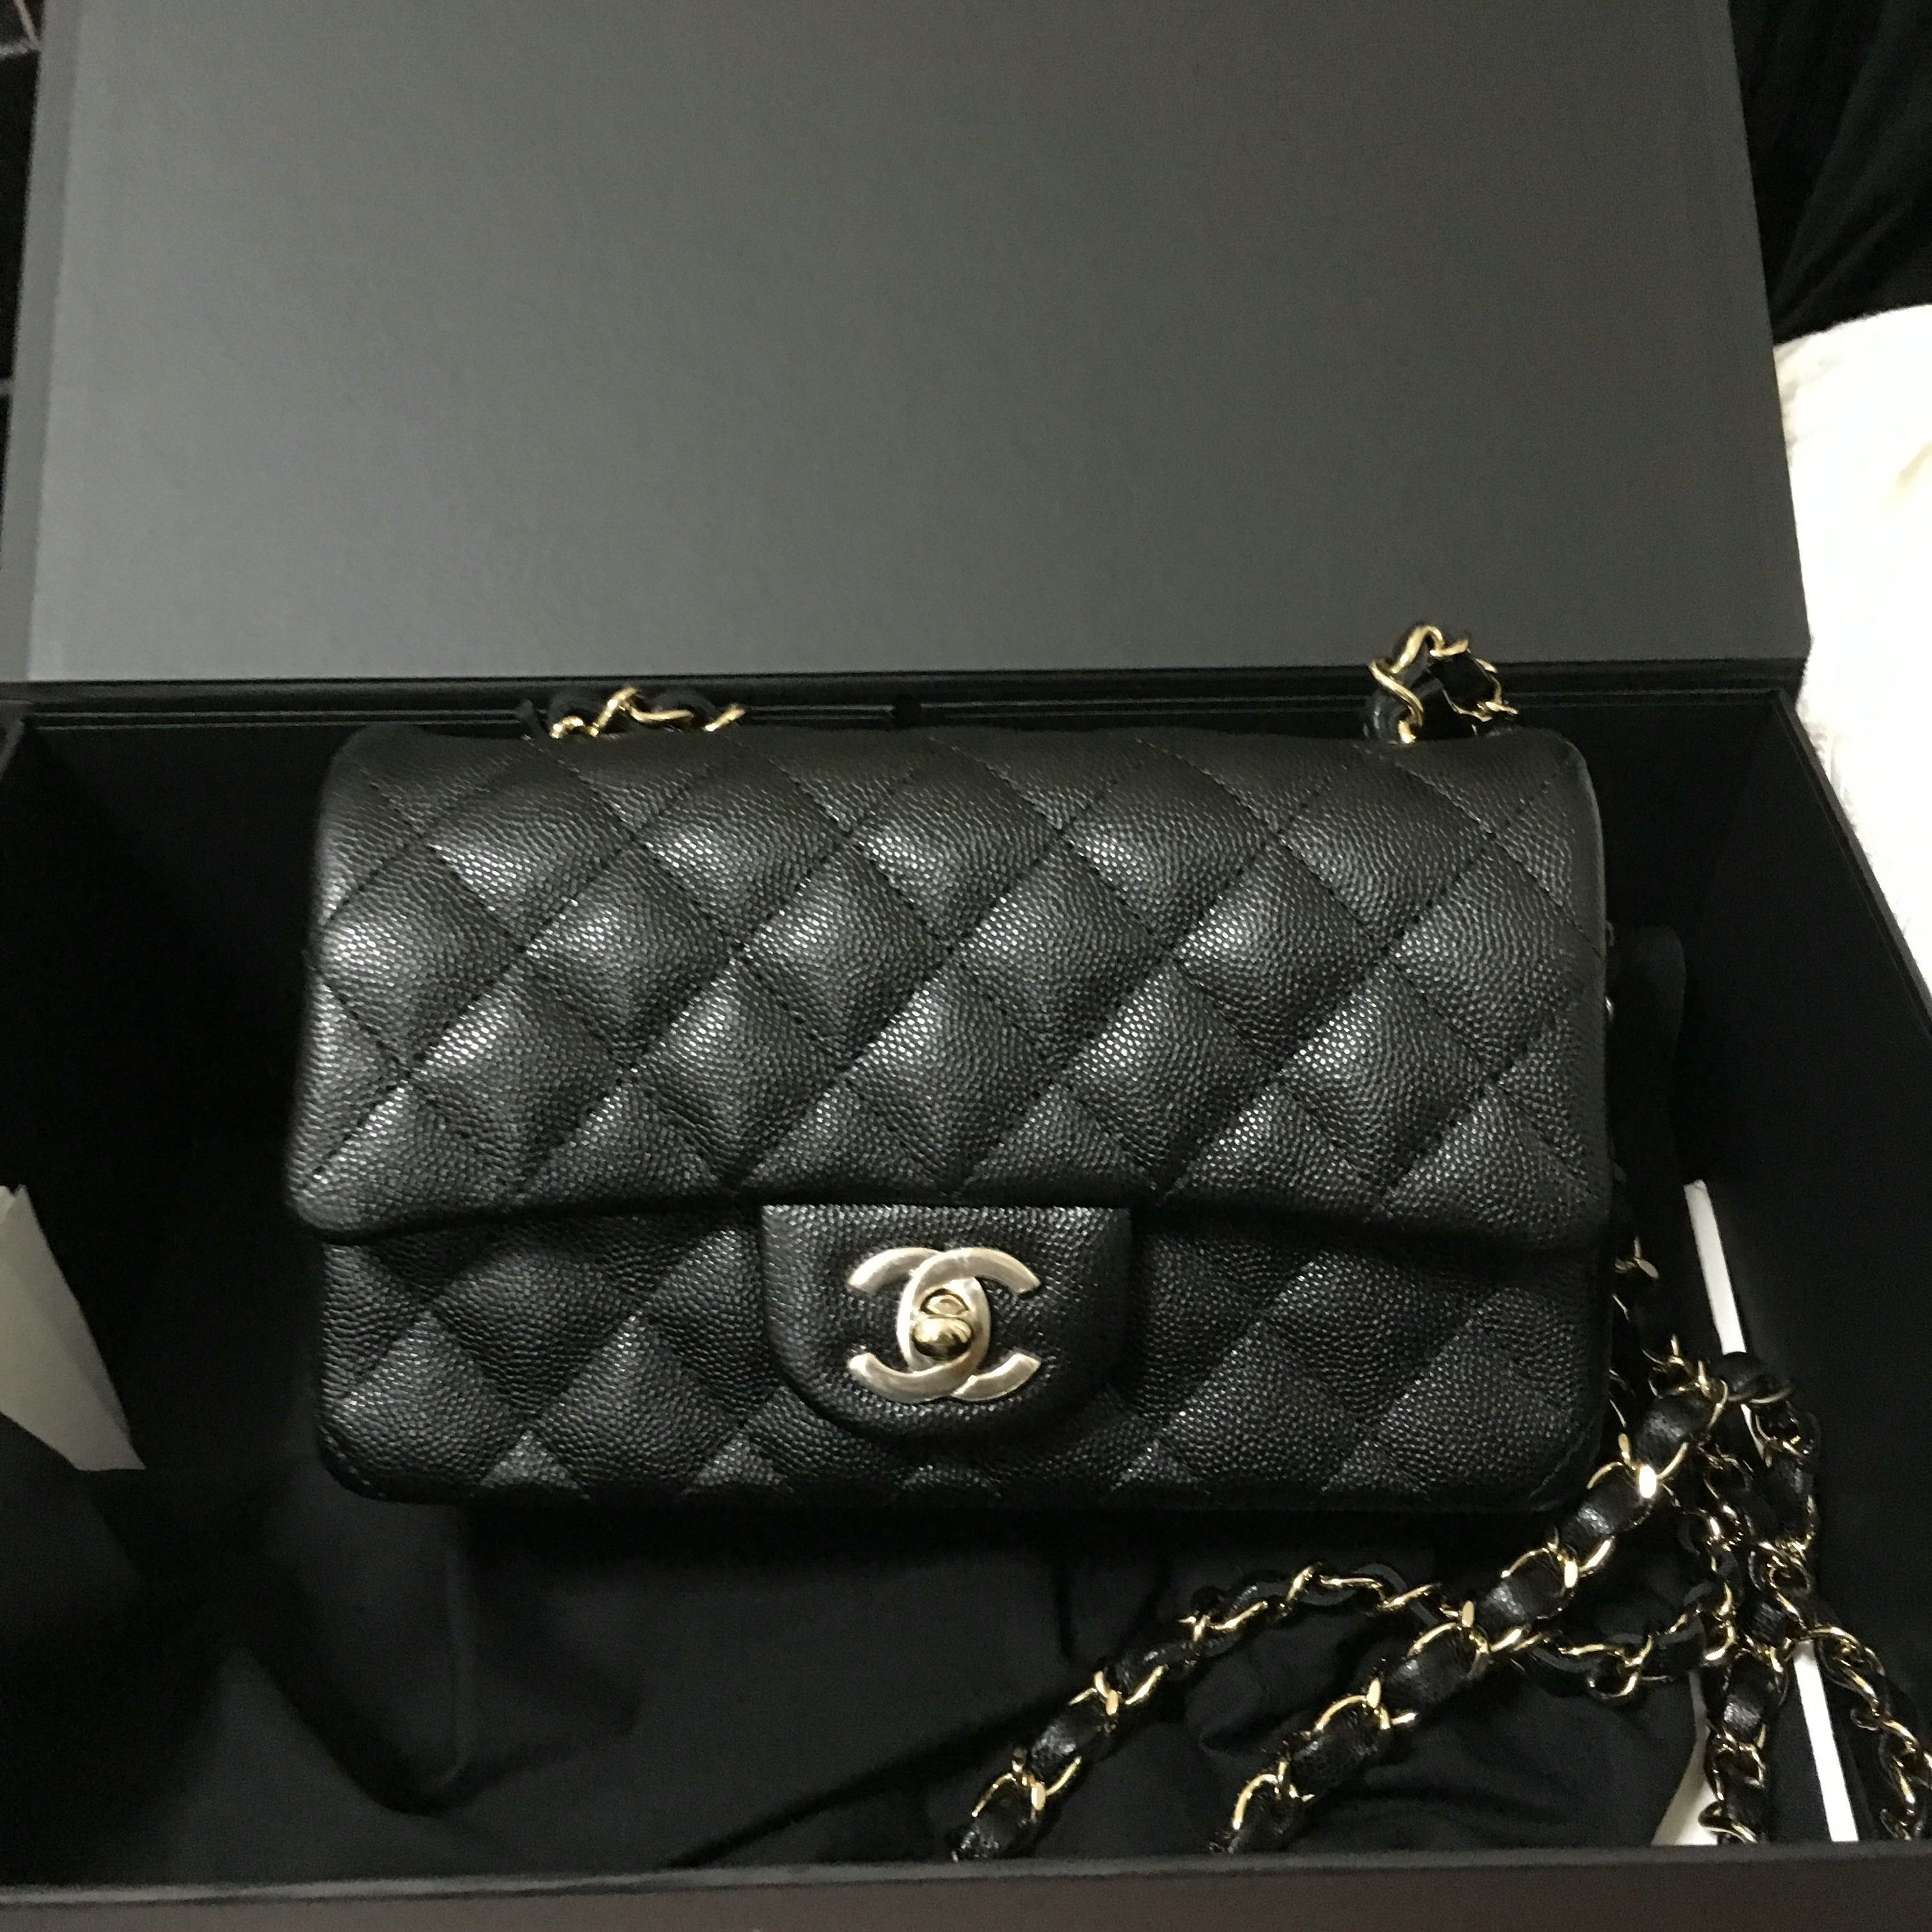 4afddf70f0d07e (SOLD) Chanel Mini Rectangular 18B Black Caviar Champagne GHW, Luxury, Bags  & Wallets, Handbags on Carousell